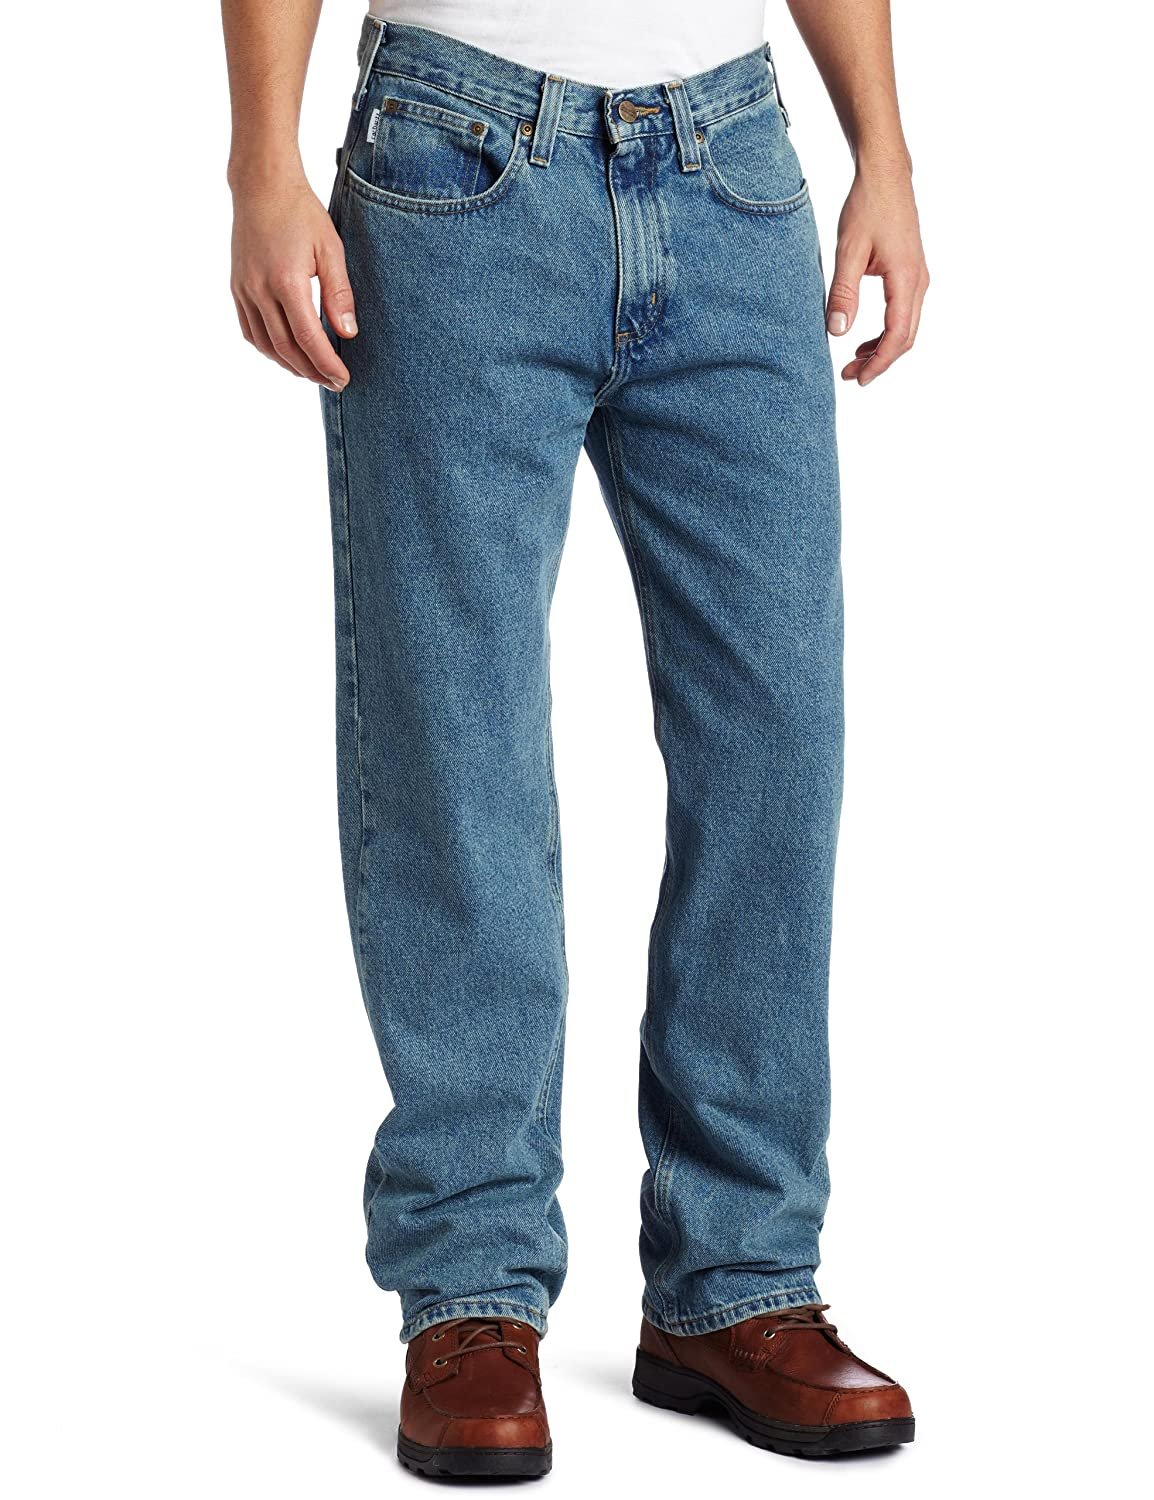 Carhartt Men's Relaxed Straight Denim Five Pocket Jean B460 Carhartt Sportswear - Mens